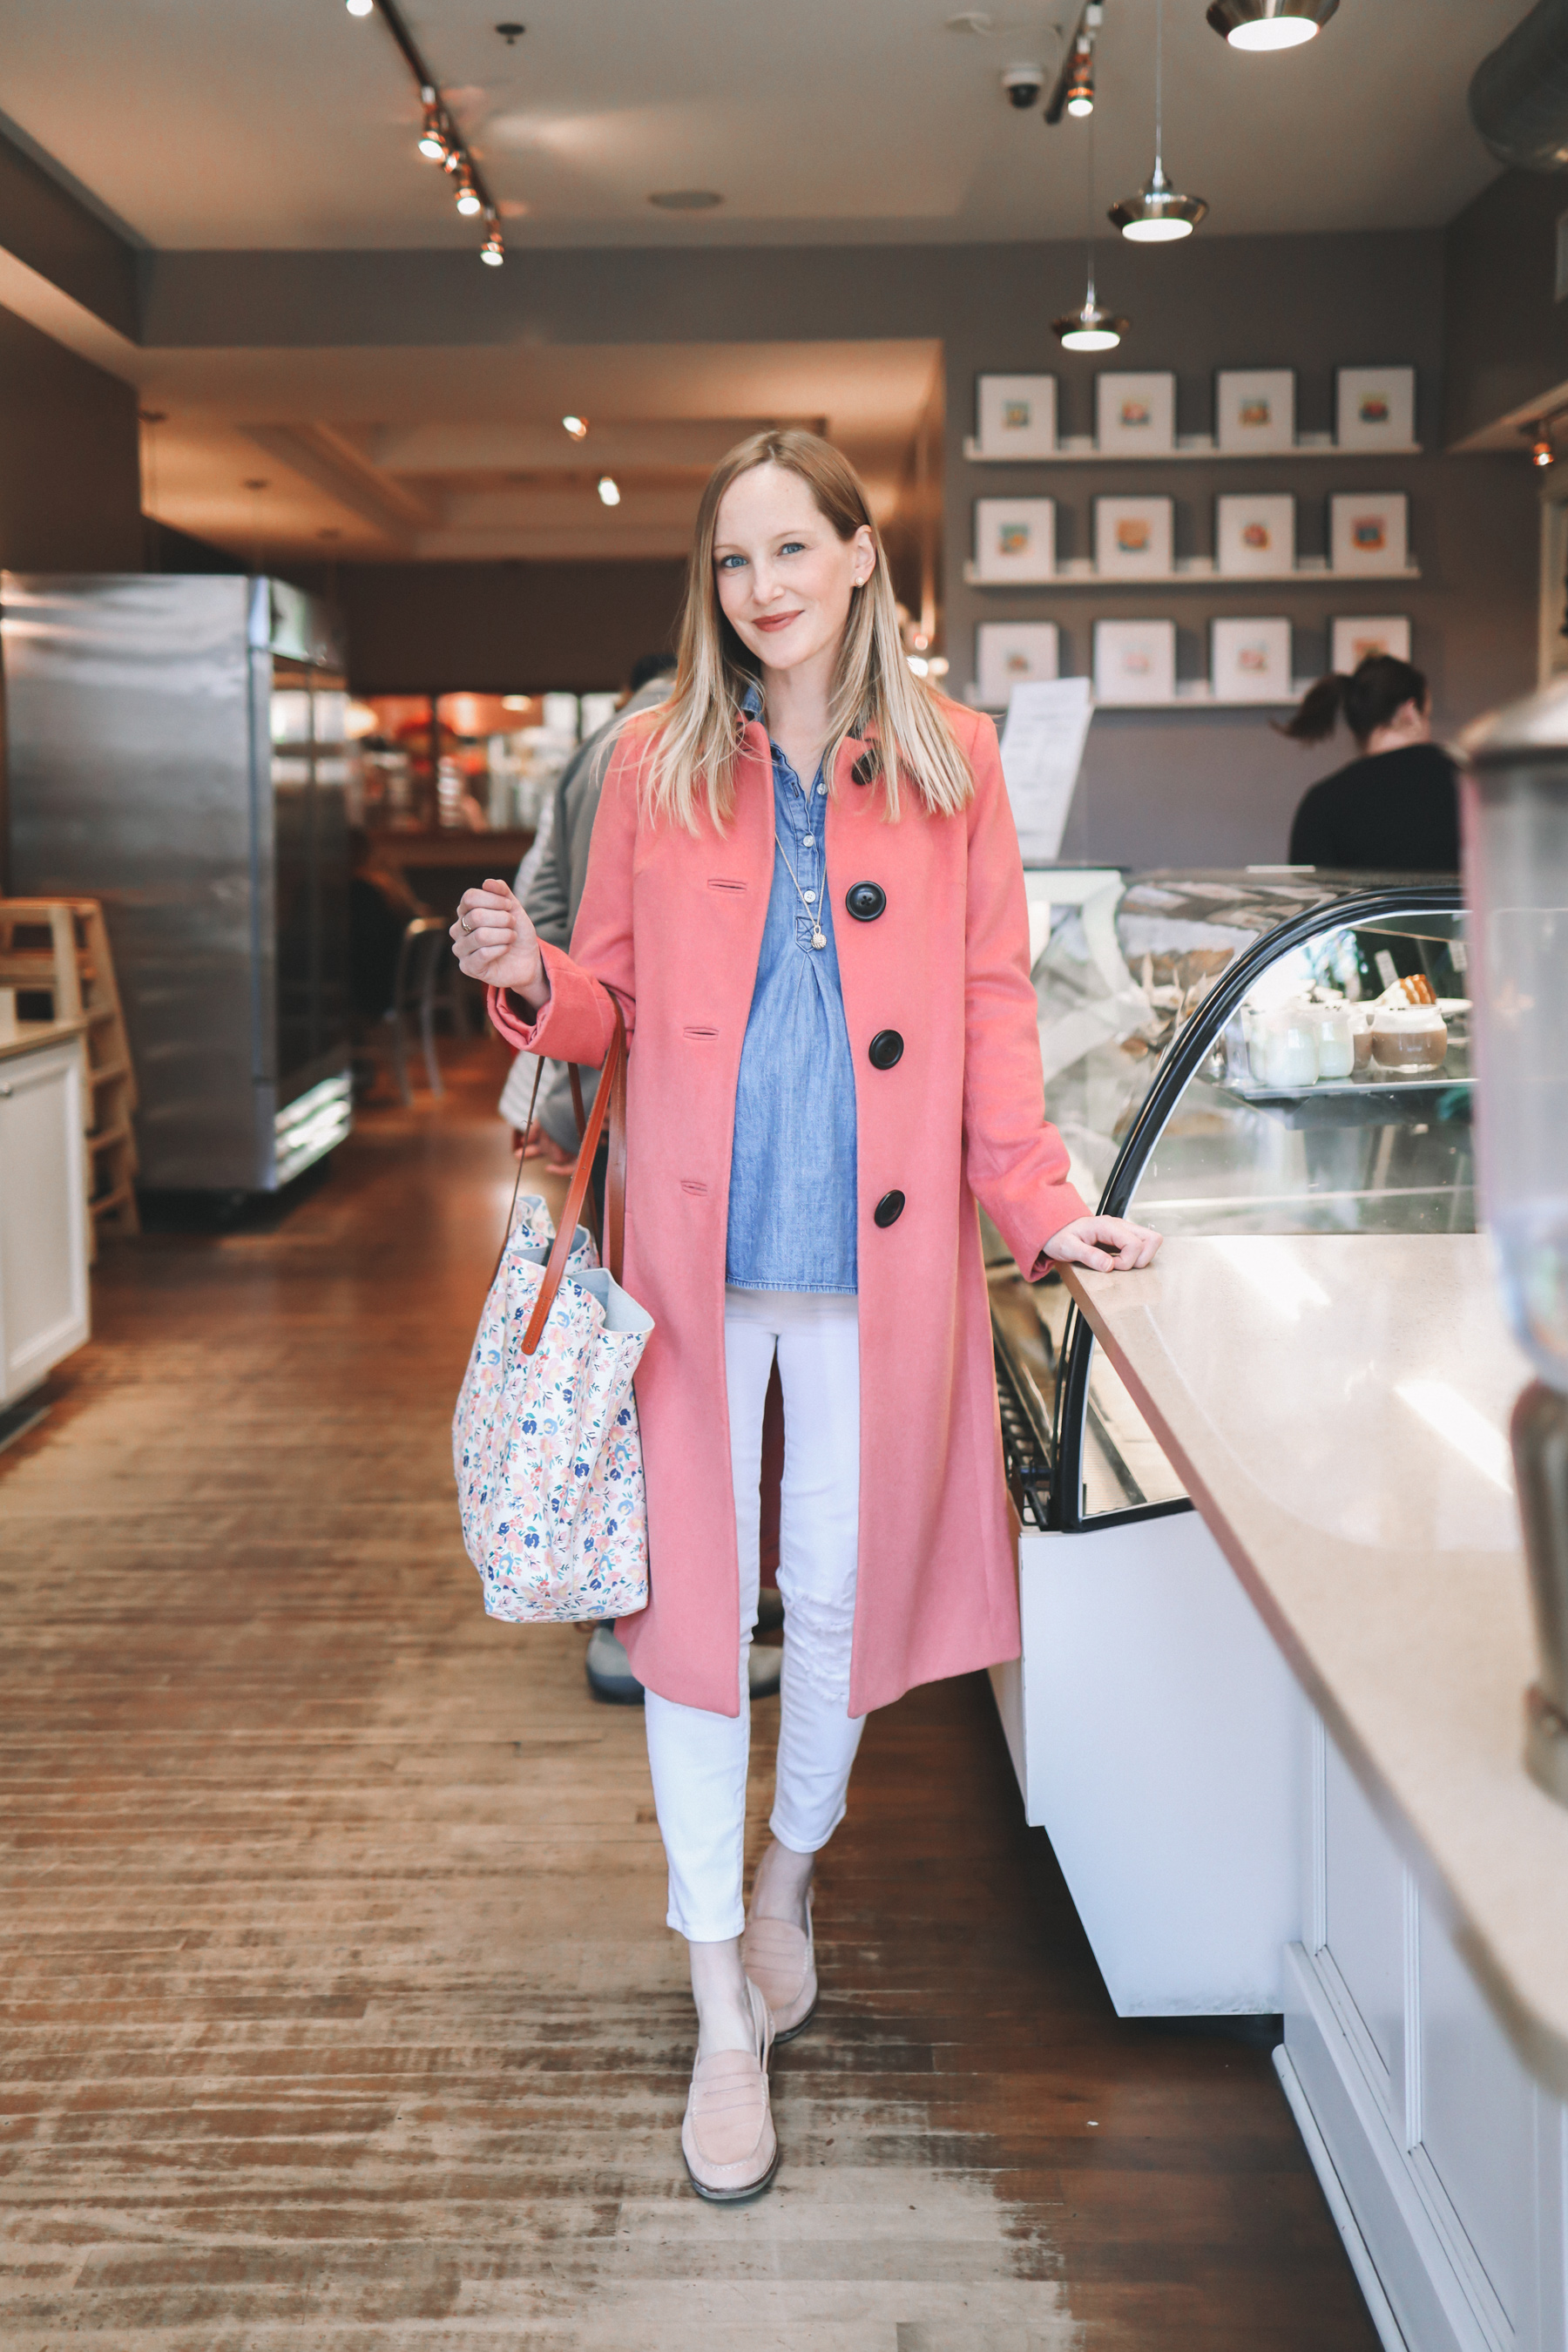 Kelly's outfit: Pink Boden Coat  / Brook & York Parker Knot Pendant / Sperry Loafers / White Maternity Jeans